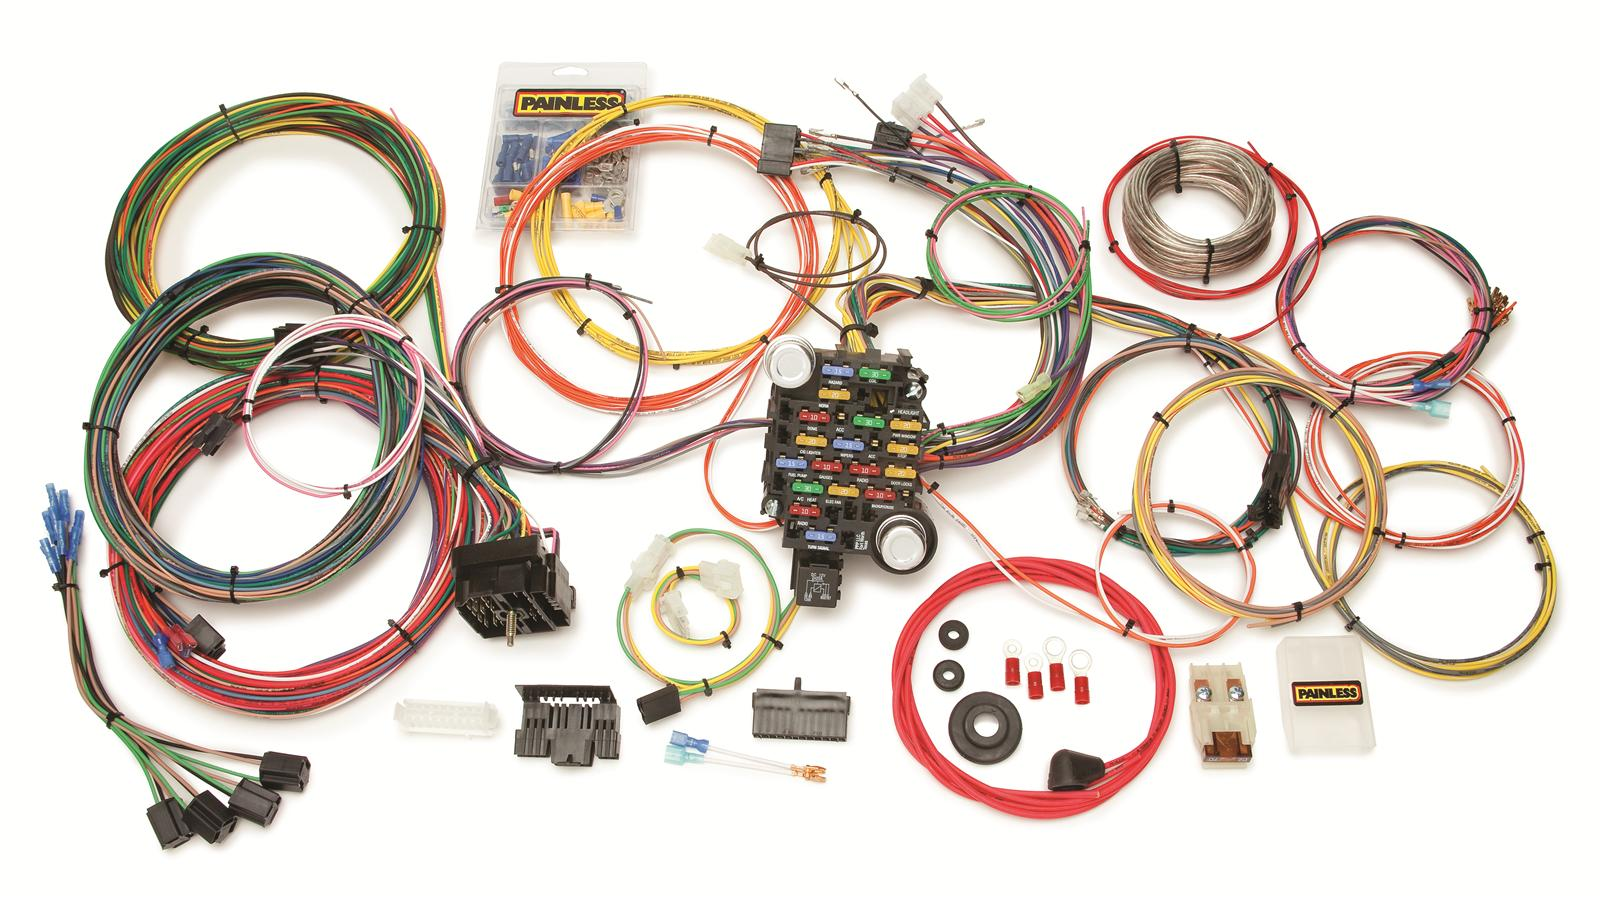 prf 10205_xl painless performance gmc chevy truck harnesses 10205 free 1985 chevy truck wiring harness at bayanpartner.co